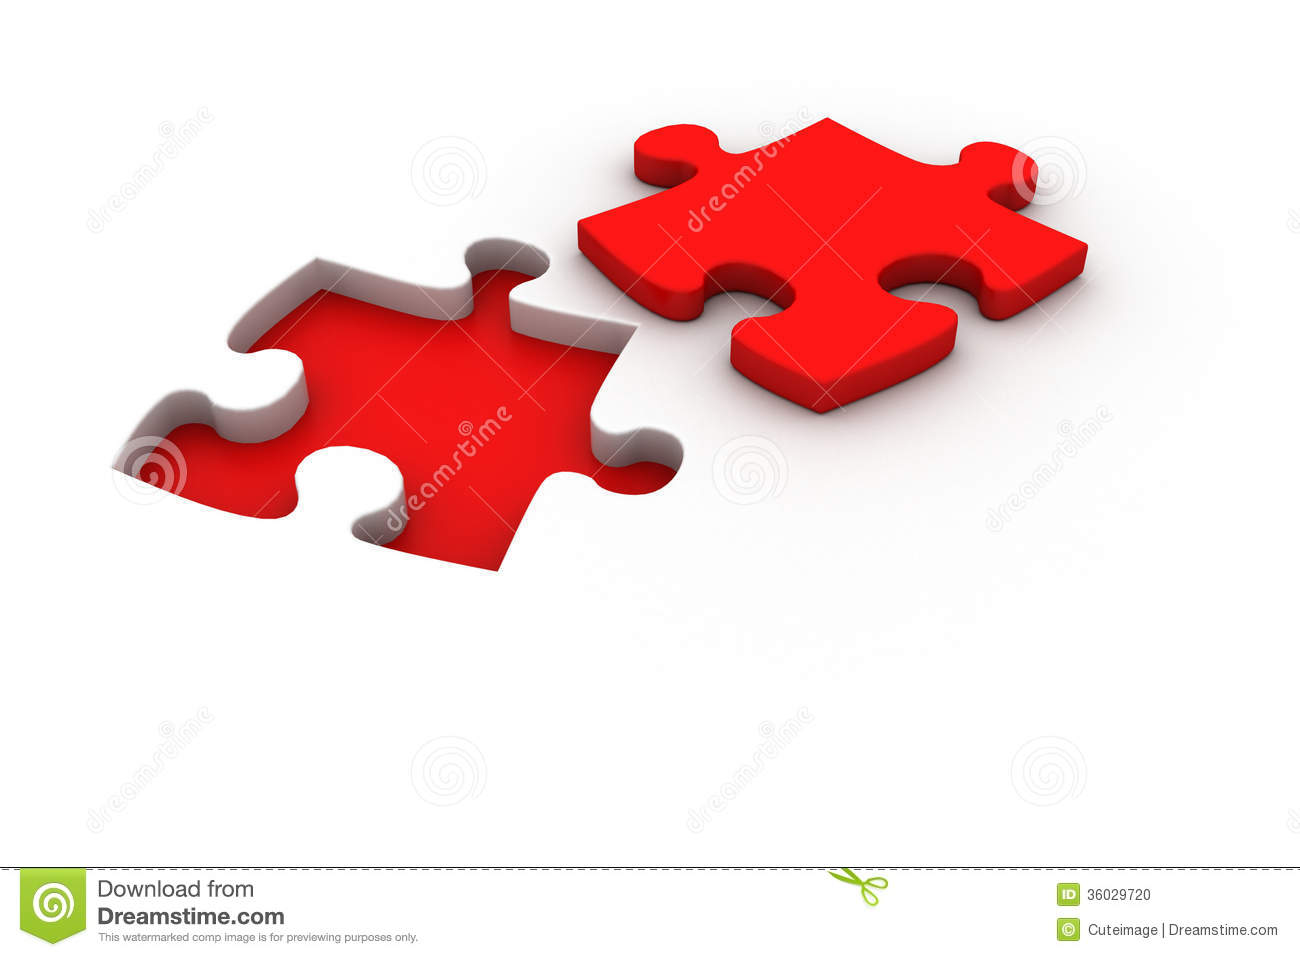 Jigsaw Puzzle With Missing Piece Stock Photo - Image: 36029720